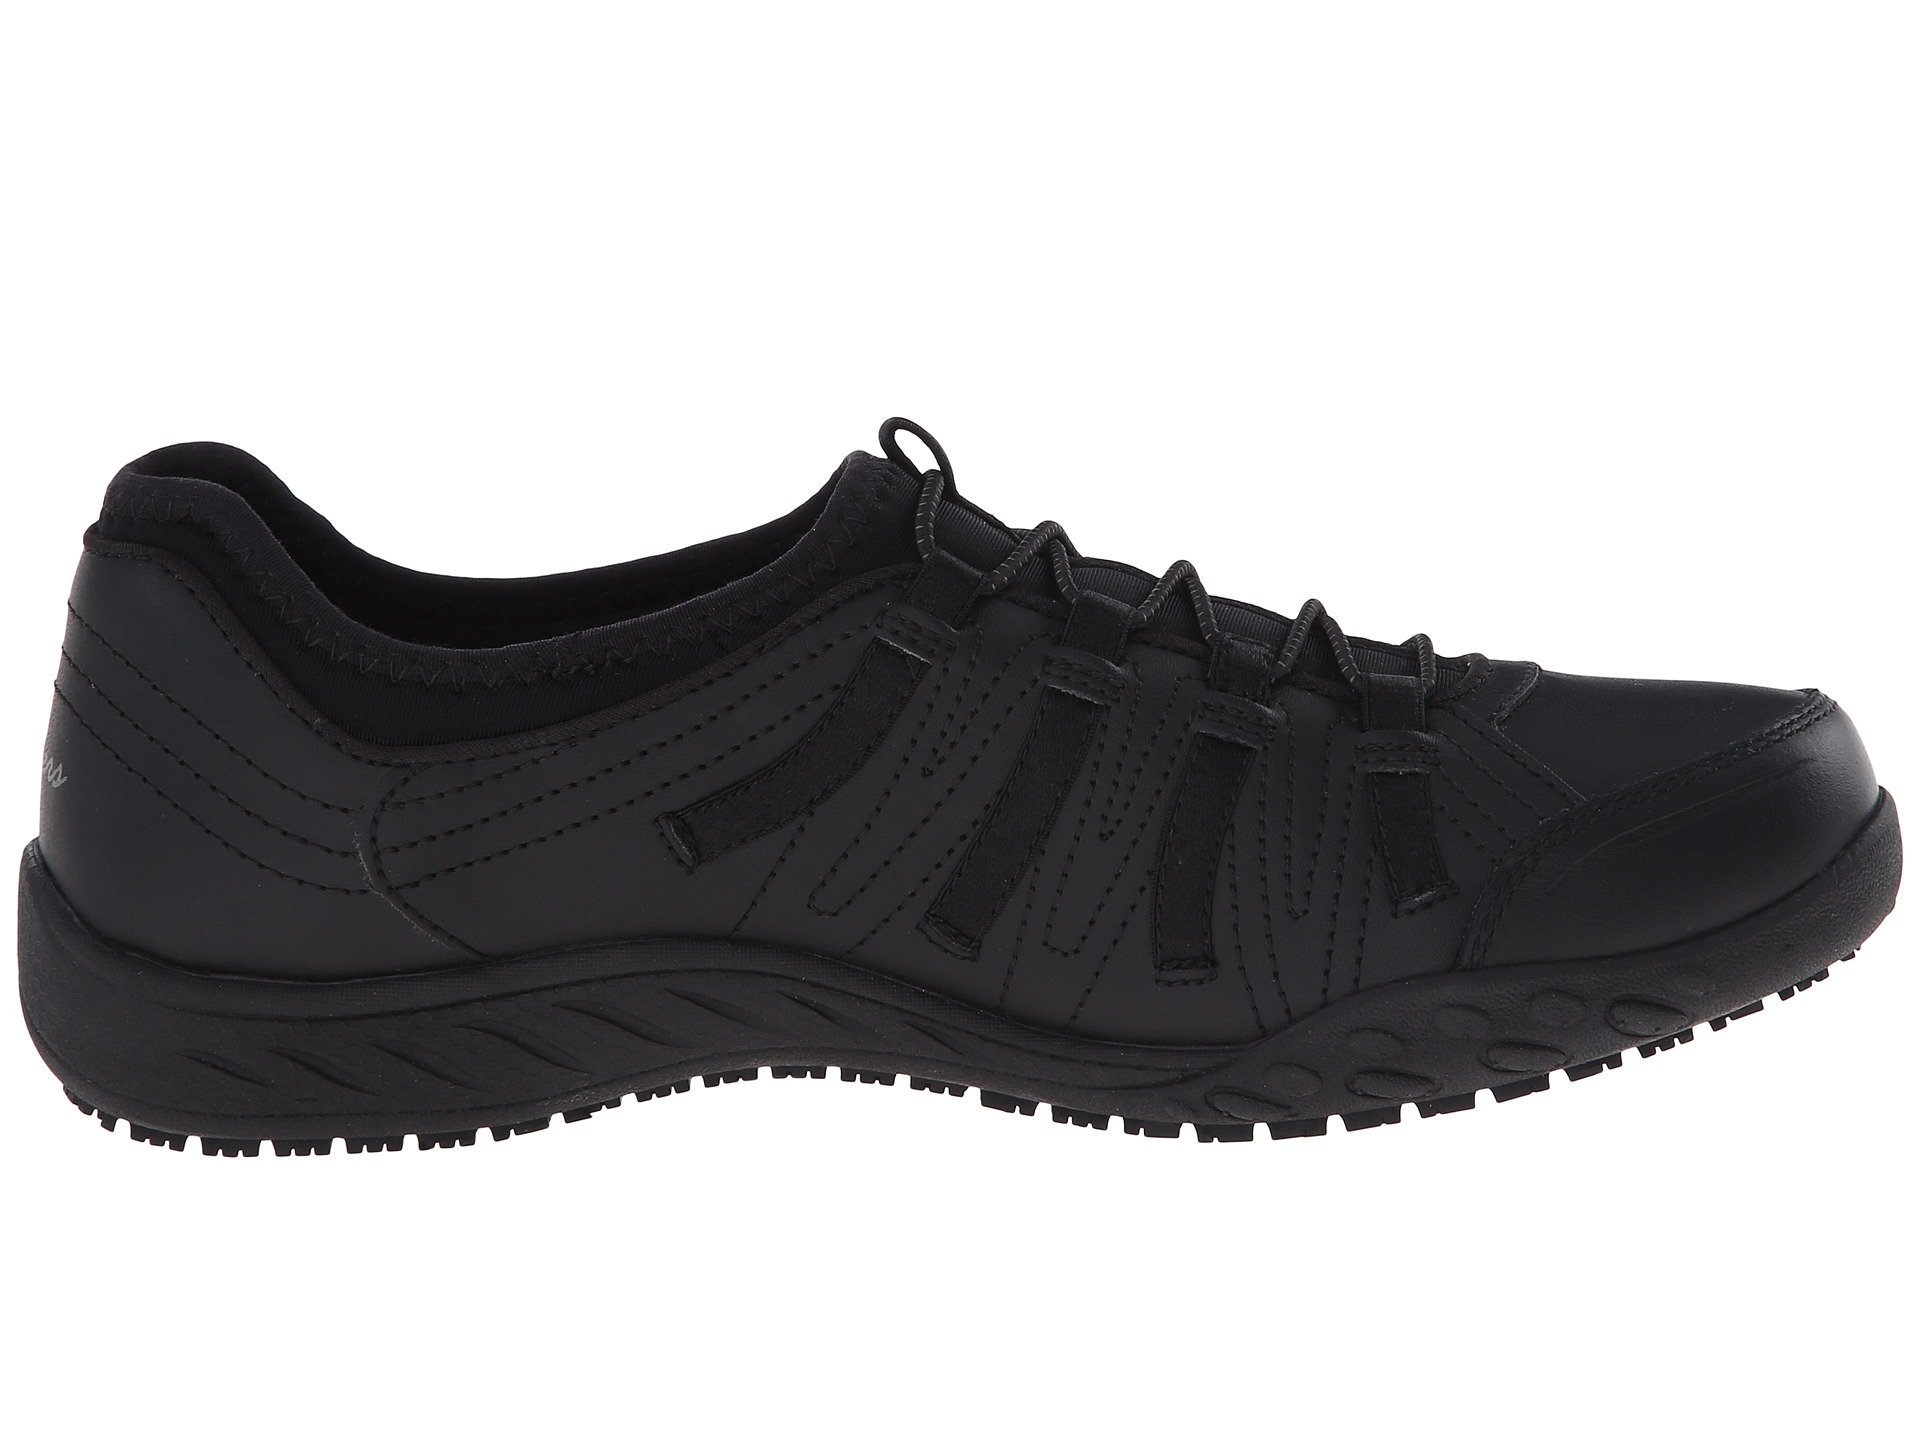 rodessa girls Skechers work women's rodessa relaxed fit slip-resistant work shoe - black (29) sold by 2 sellers.